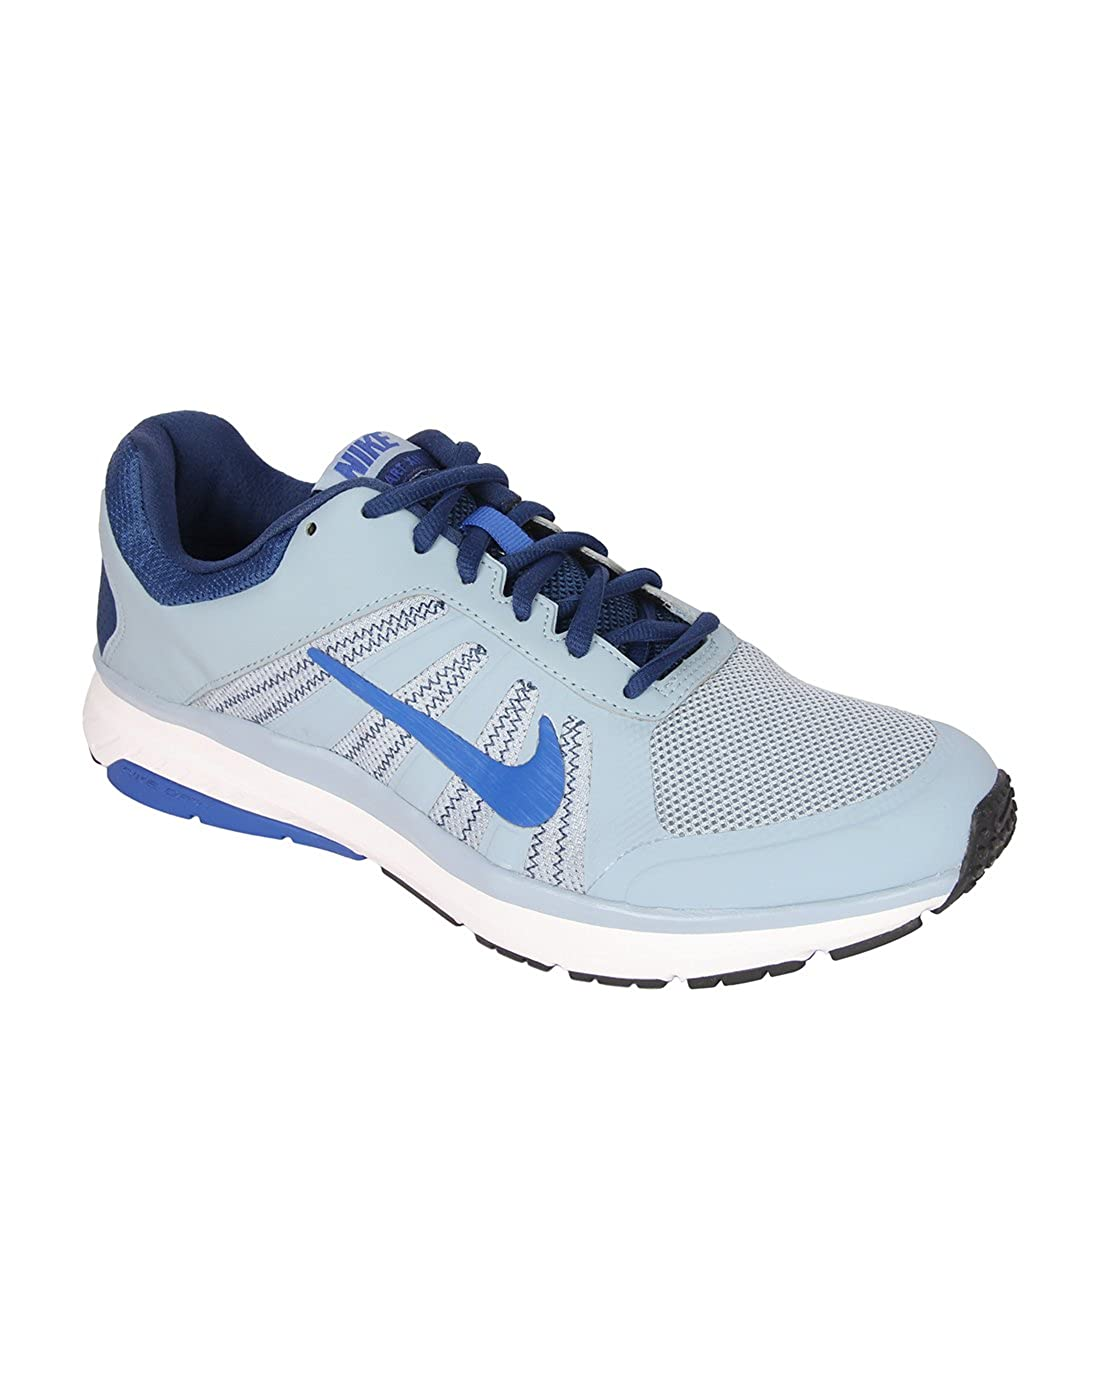 timeless design 63b82 6b9a8 Nike Men's DART 12 MSL Blue Running Shoes(UK-8): Buy Online at Low Prices  in India - Amazon.in